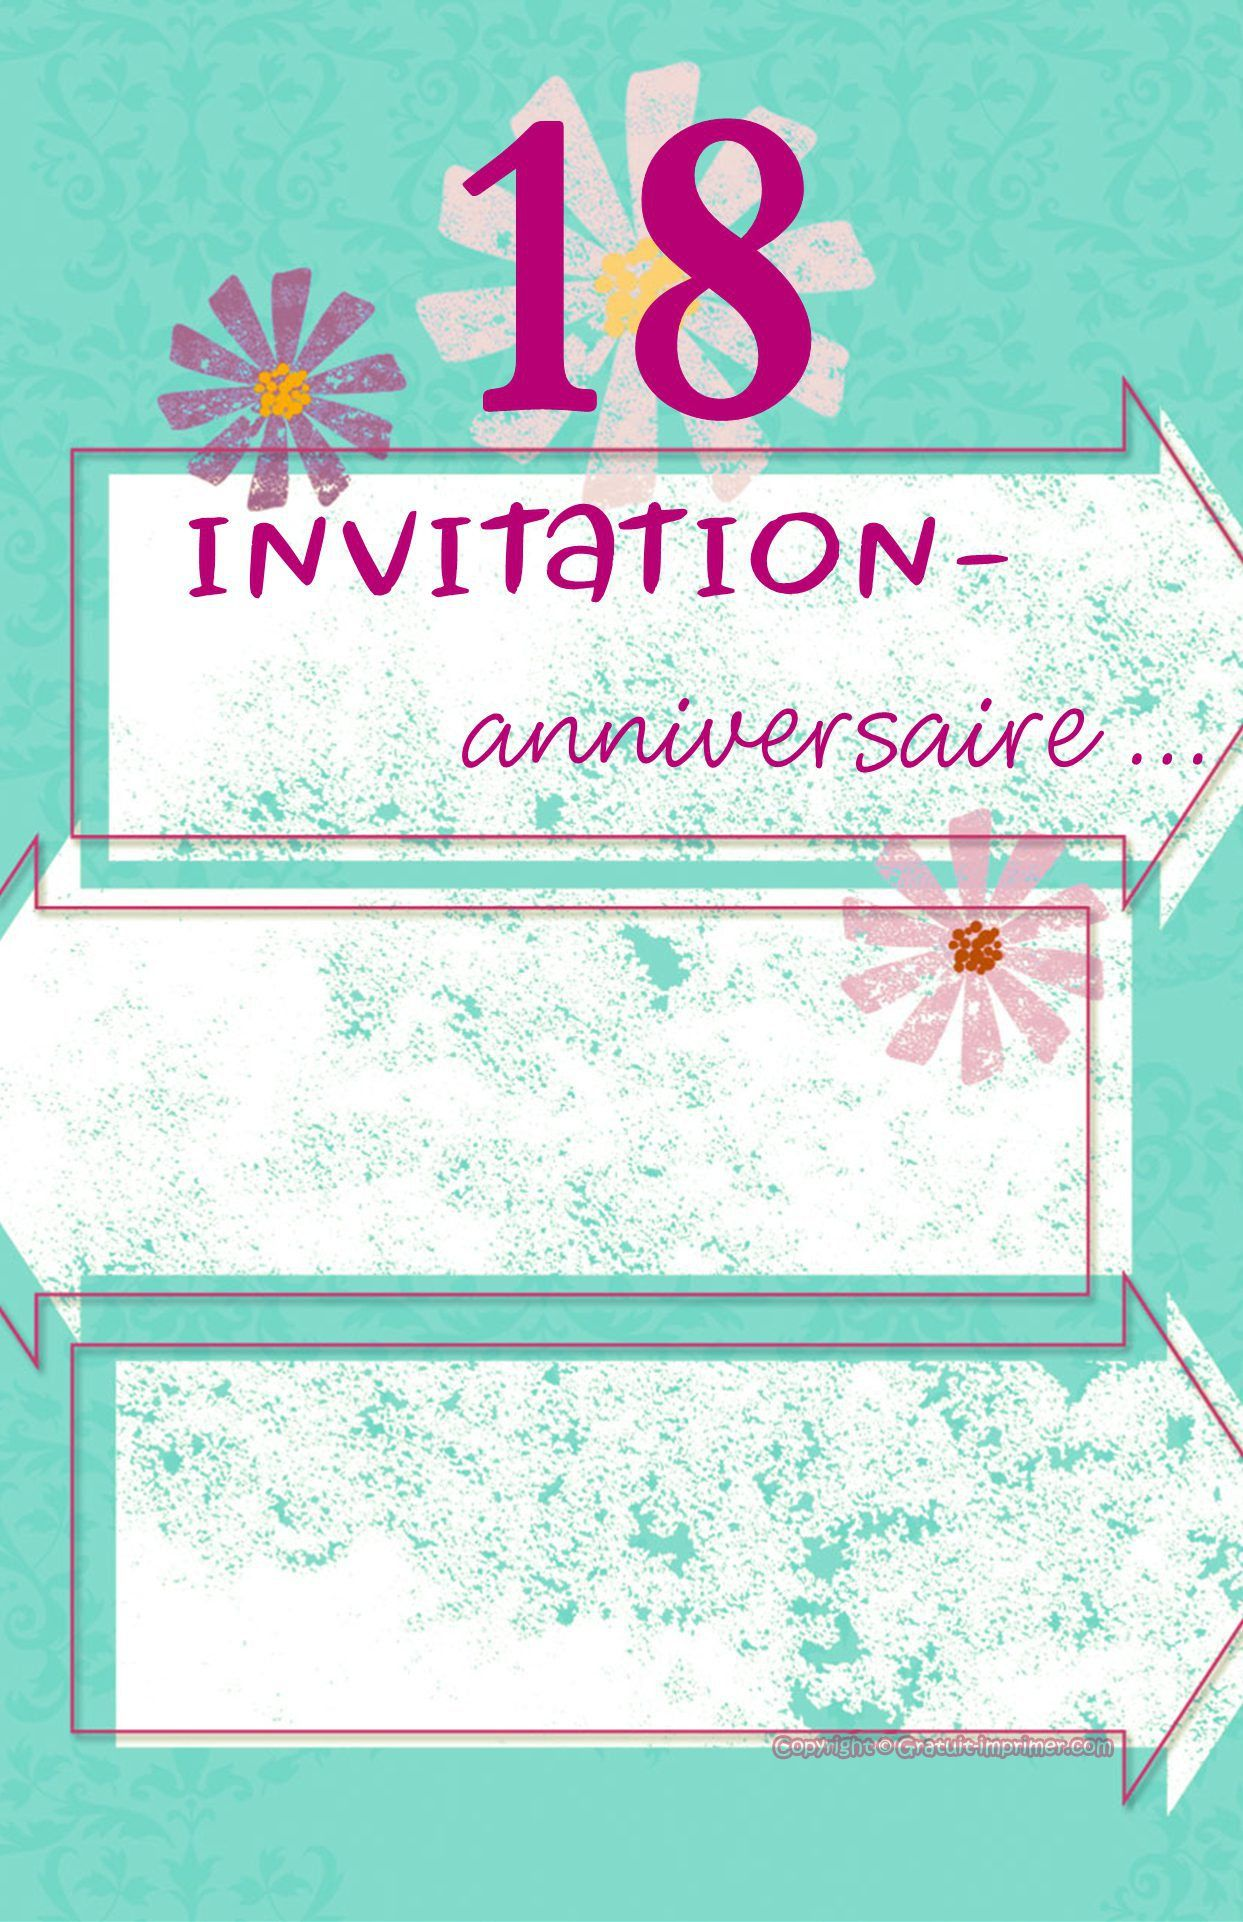 carte invitation anniversaire carte invitation. Black Bedroom Furniture Sets. Home Design Ideas